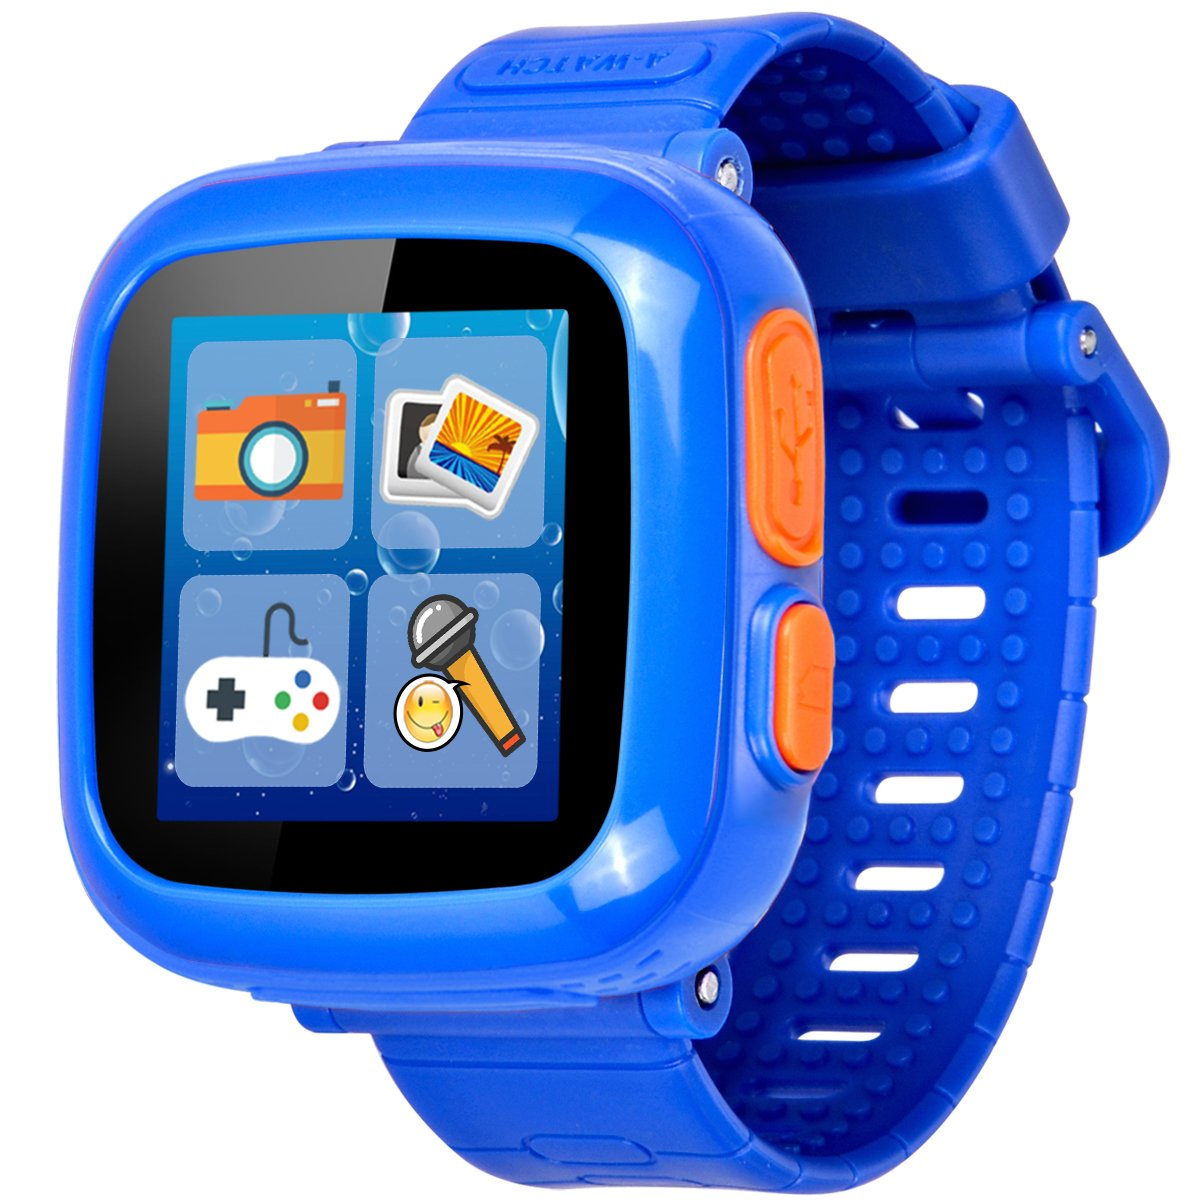 GBD Kids Game Watch,1.5'' Touch Smart Watches for Summer Birthday Gifts Travel Camping Kids Boys Girls with Pedometer Camera Alarm Clock Electronic Learning Toys (03Dark Blue)